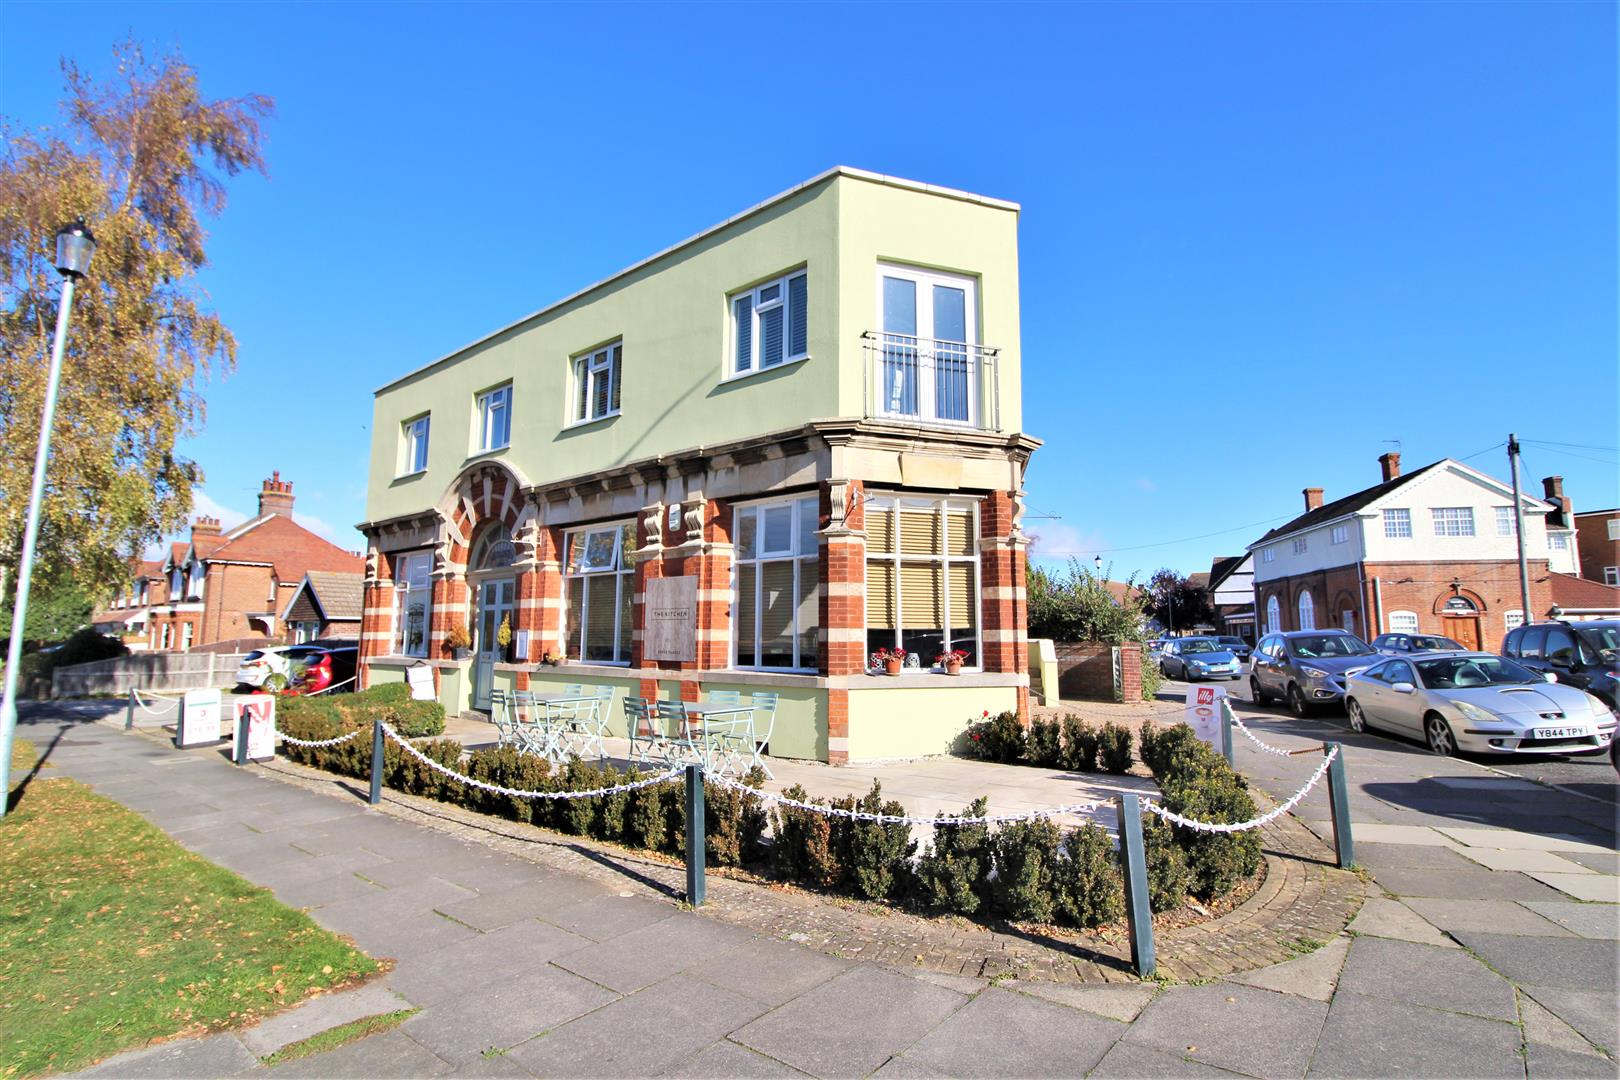 Fourth Avenue, Frinton-On-Sea, Essex, CO13 9EB